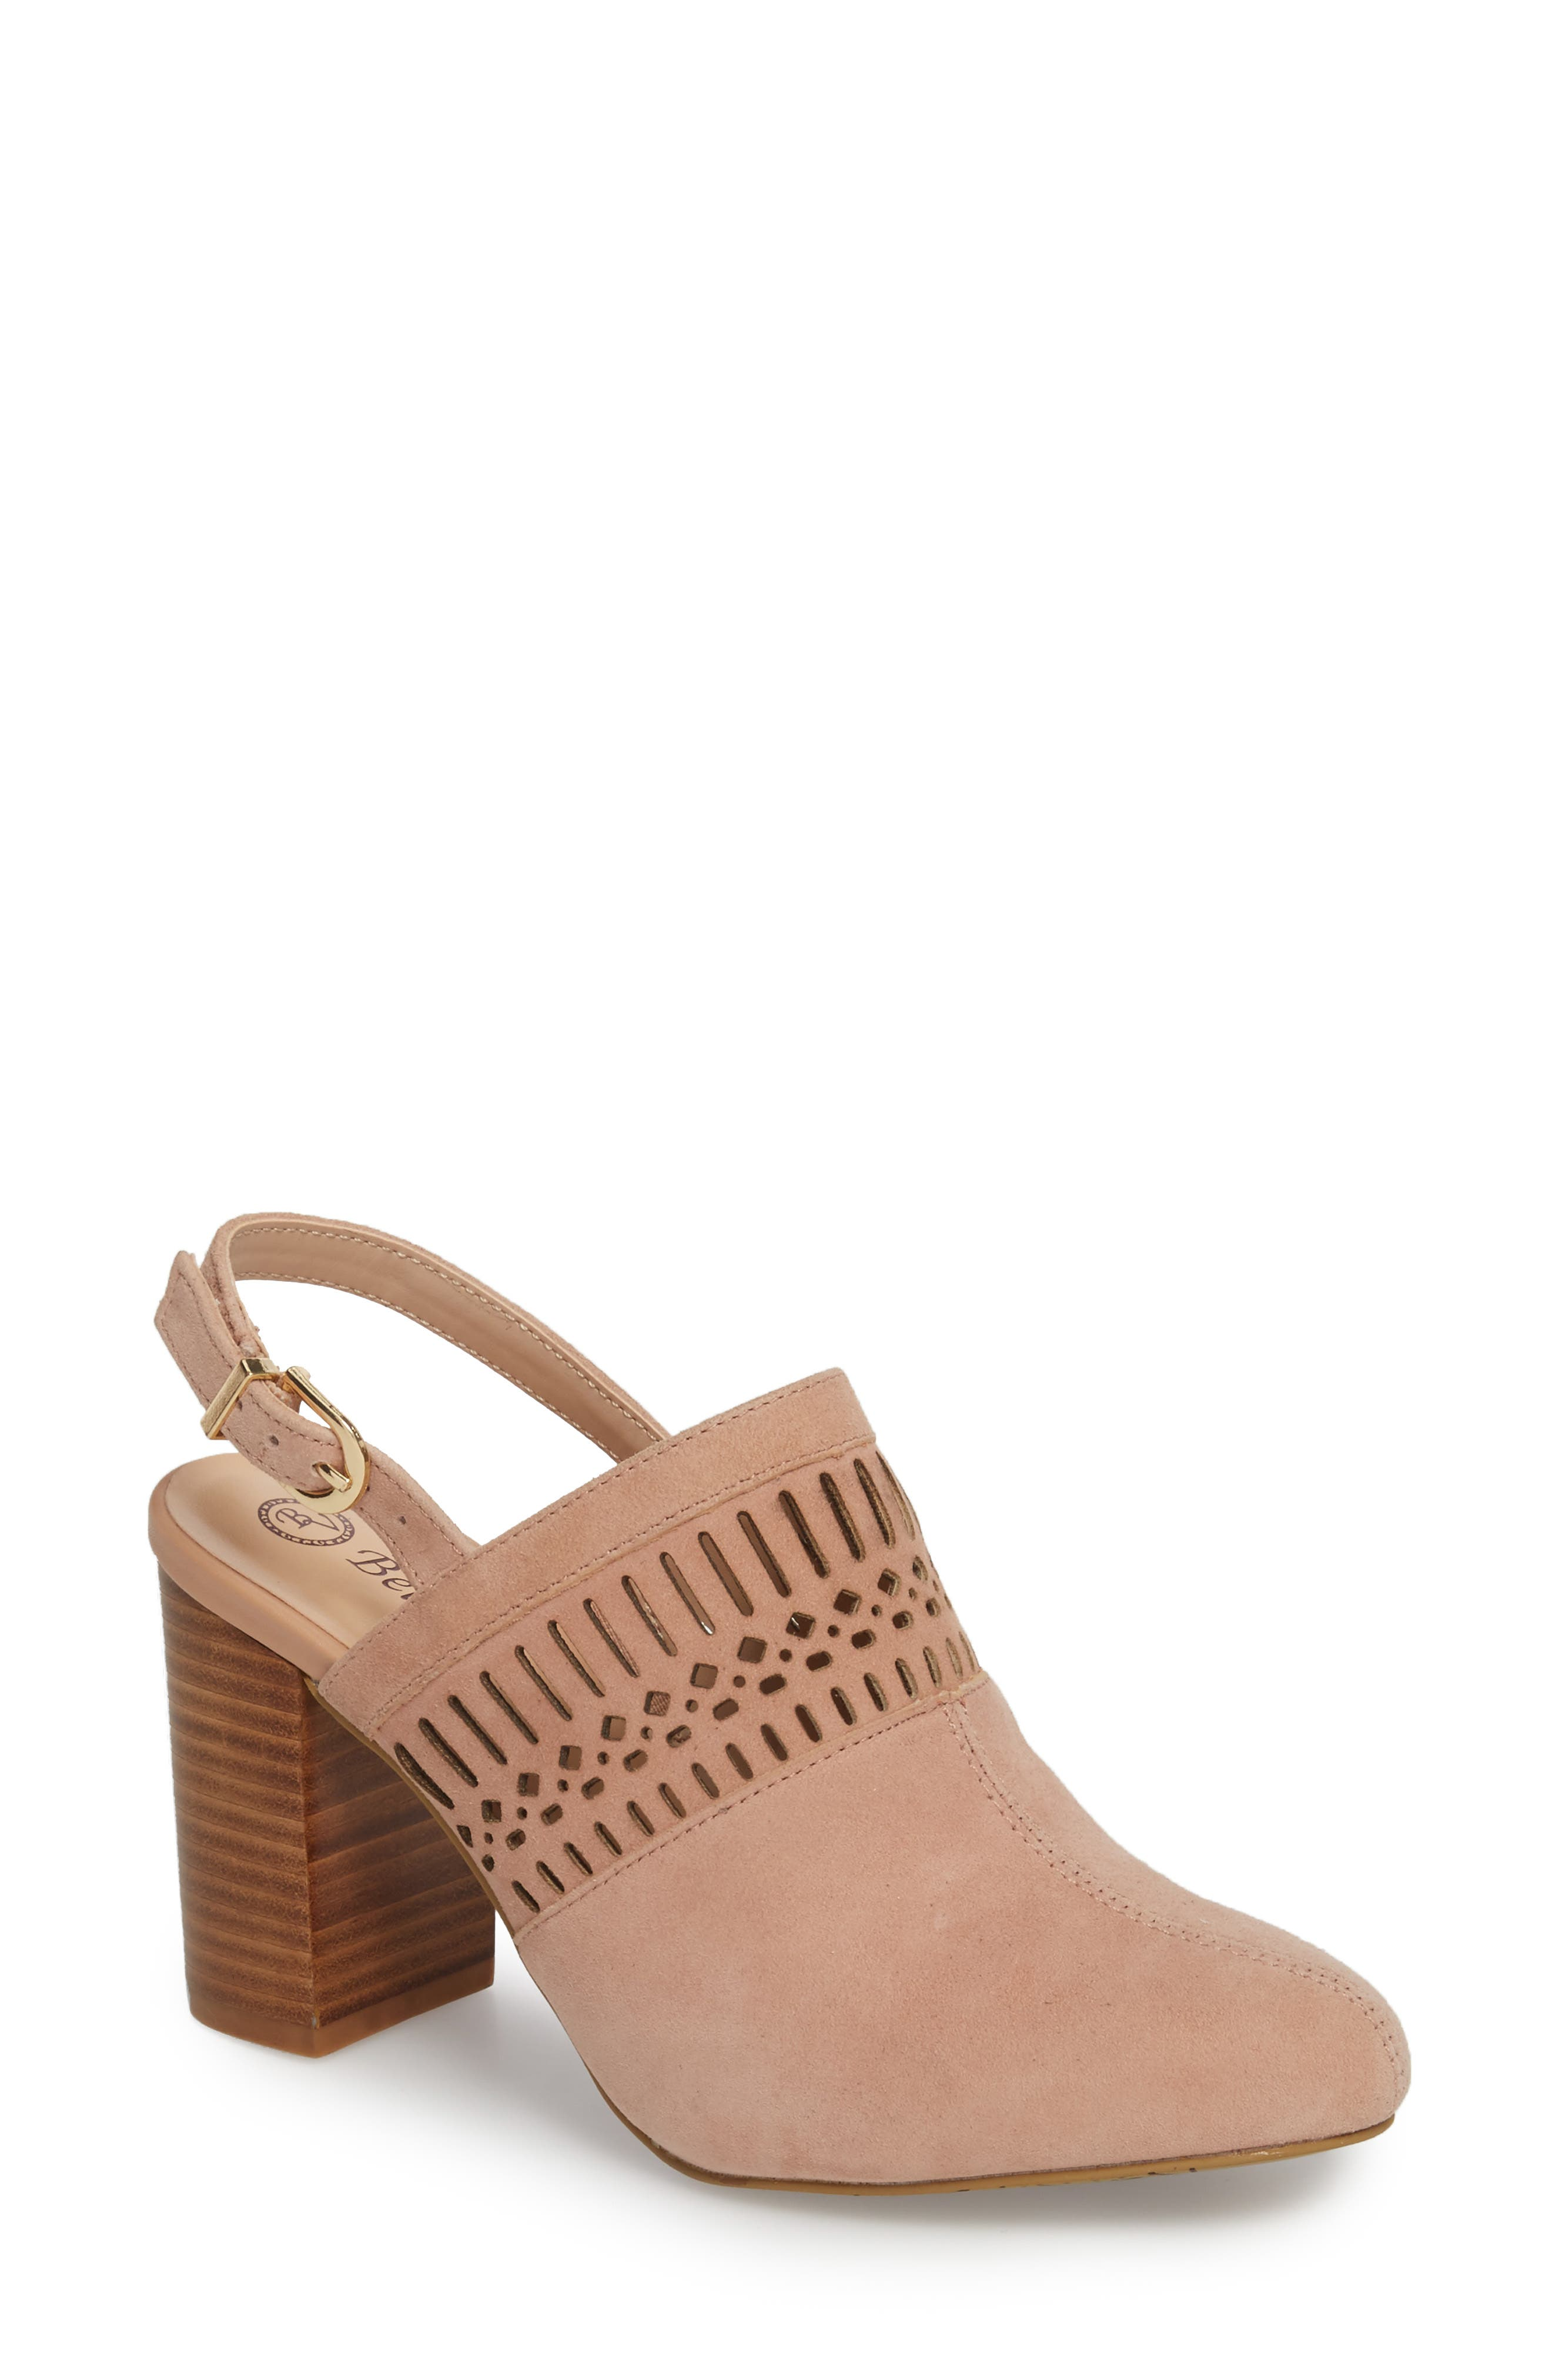 Nox Slingback Perforated Pump,                         Main,                         color, Blush Suede